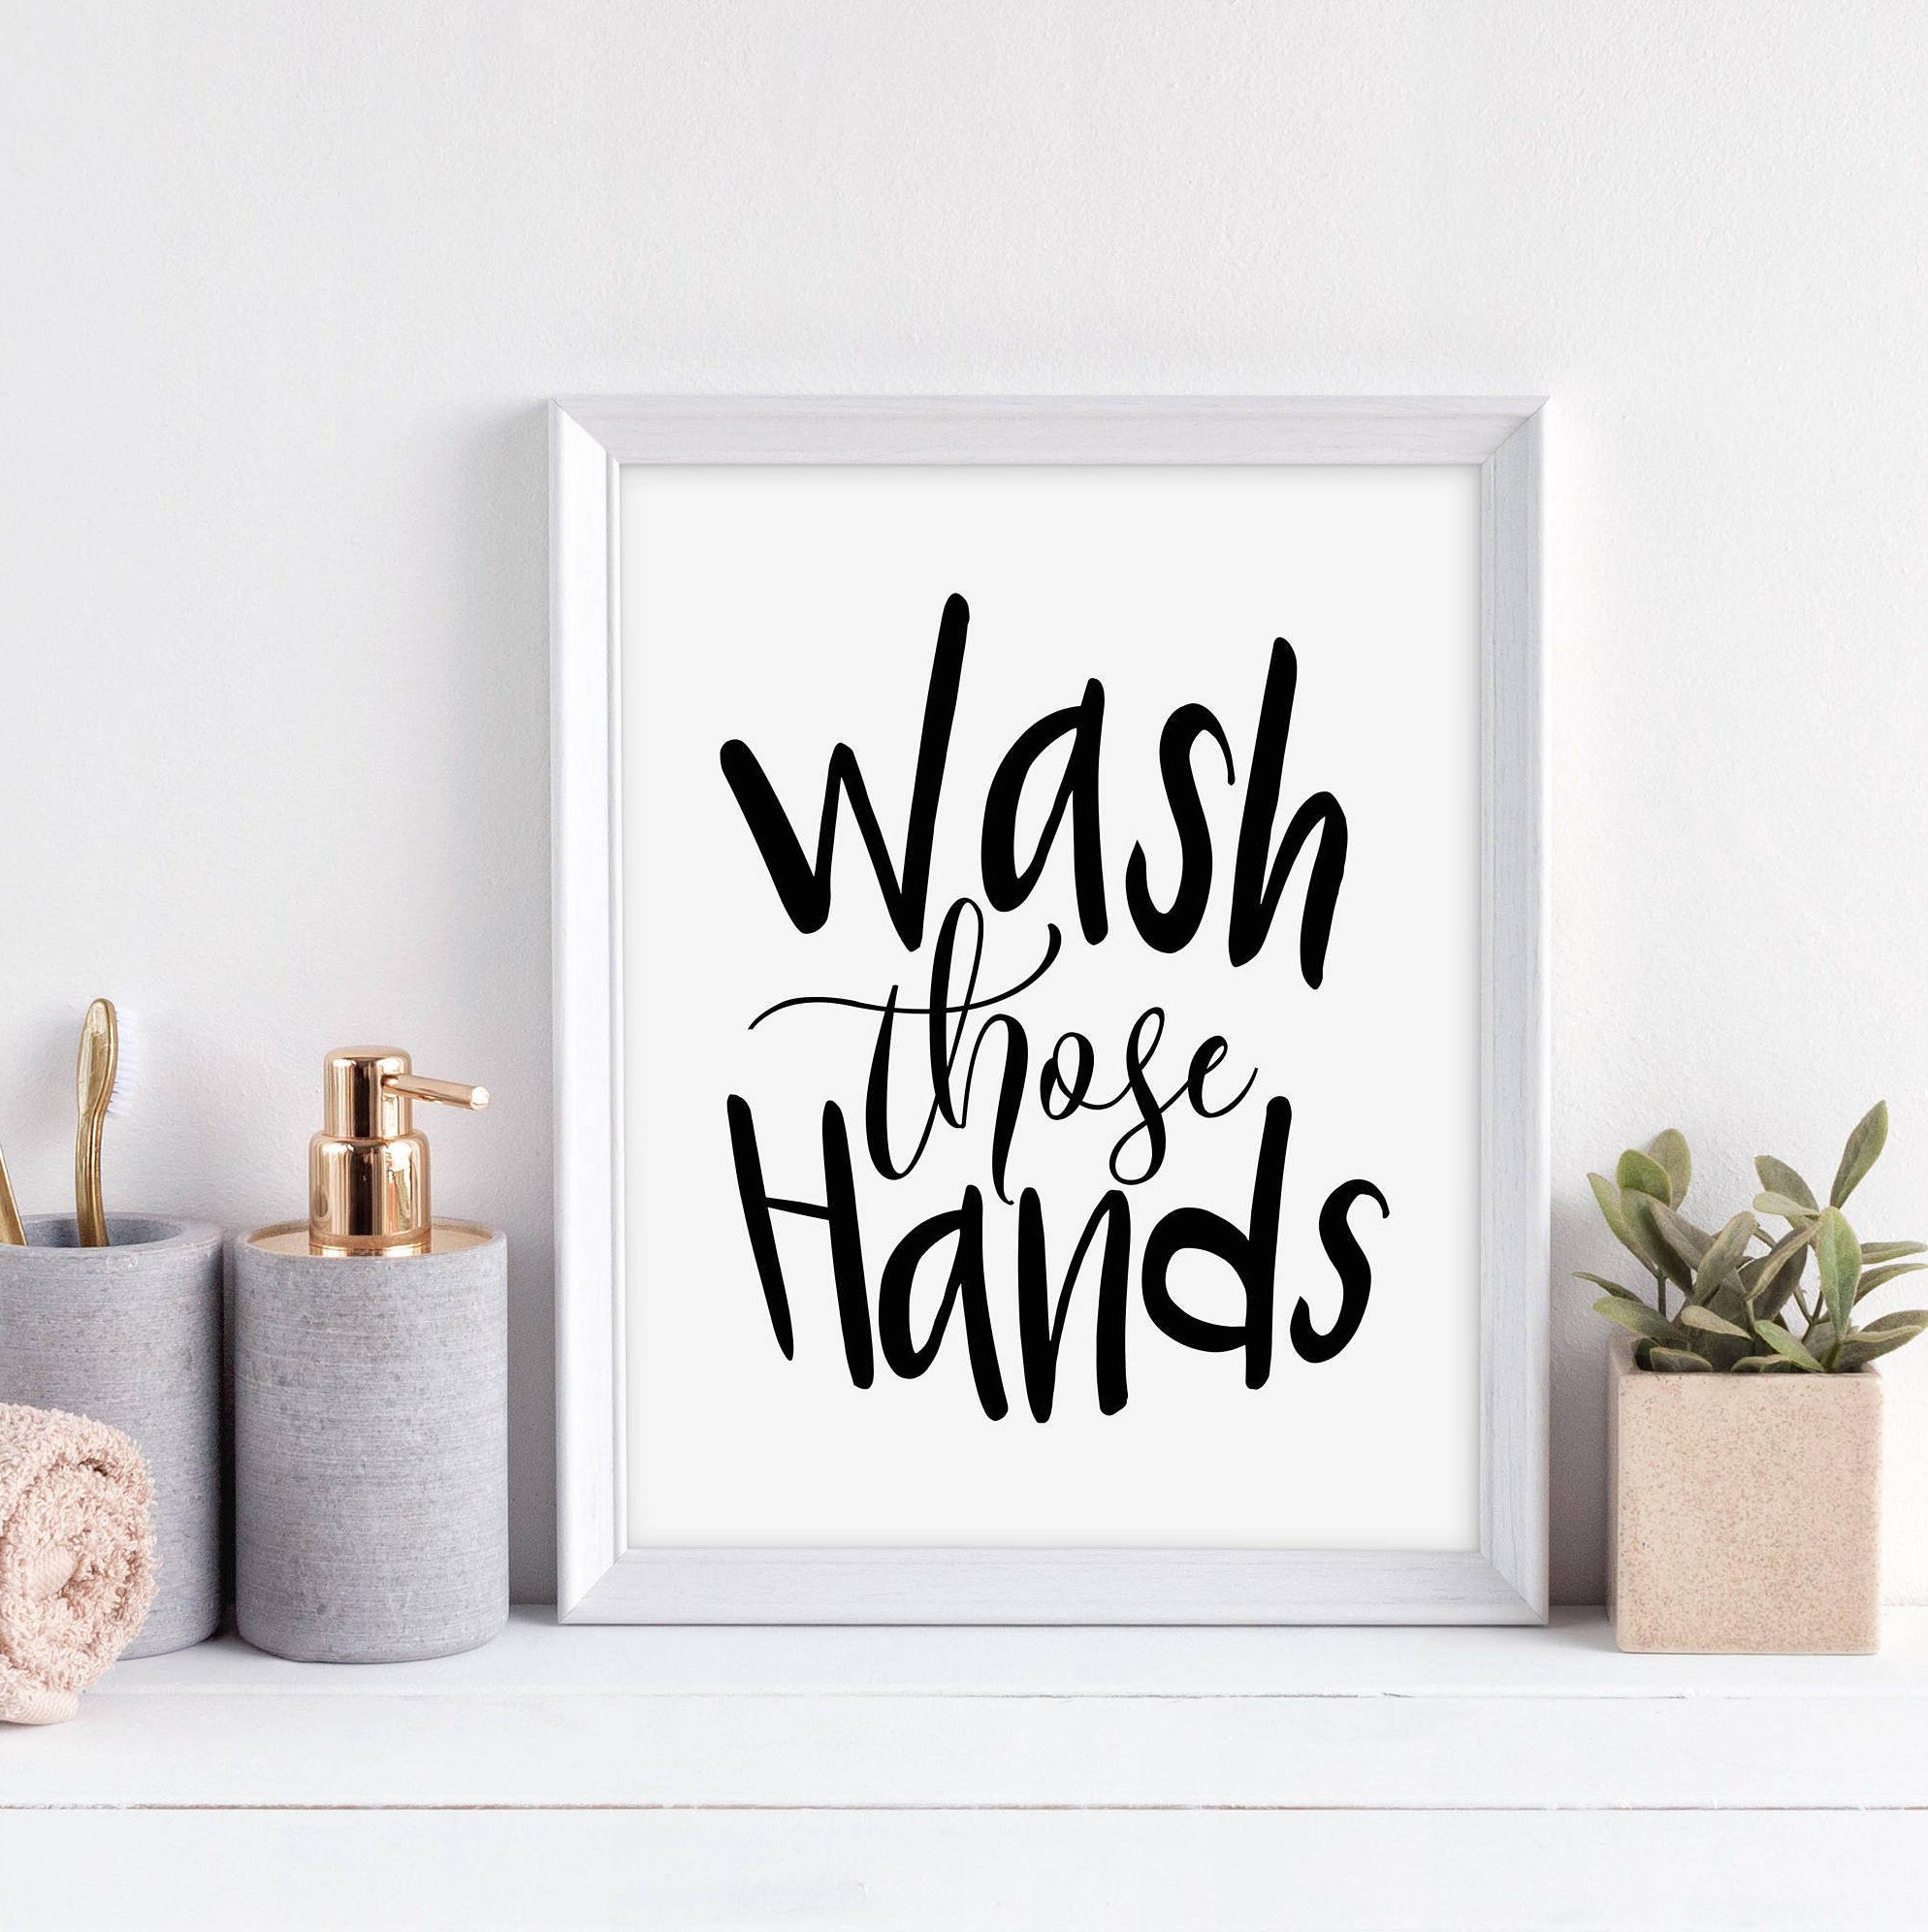 wash those hands print, bathroom printable art, bathroom wall decor